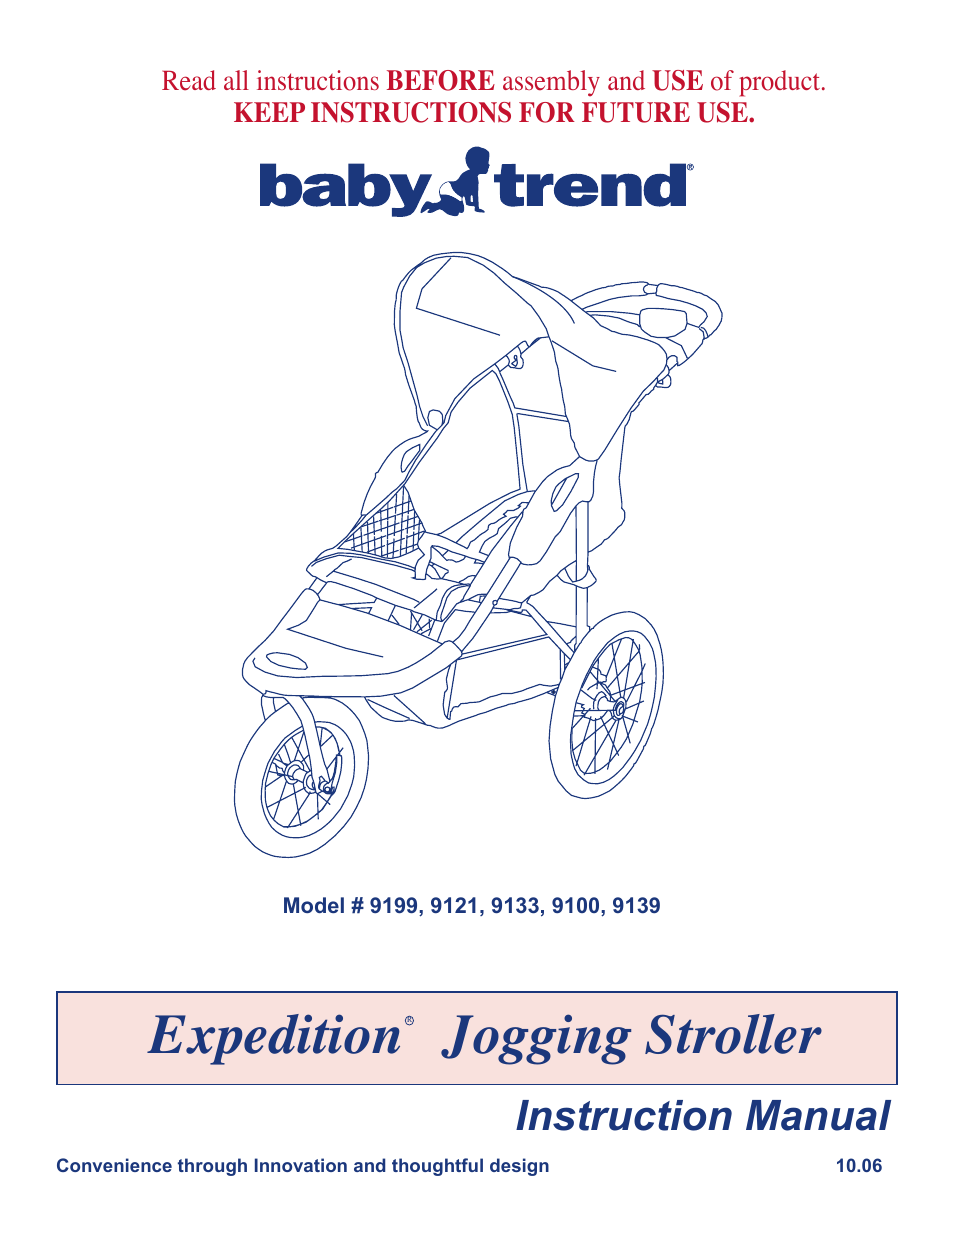 baby trend expedition jogging stroller 9100 user manual 8 pages rh manualsdir com baby trend velocity manual baby trend stroller manual